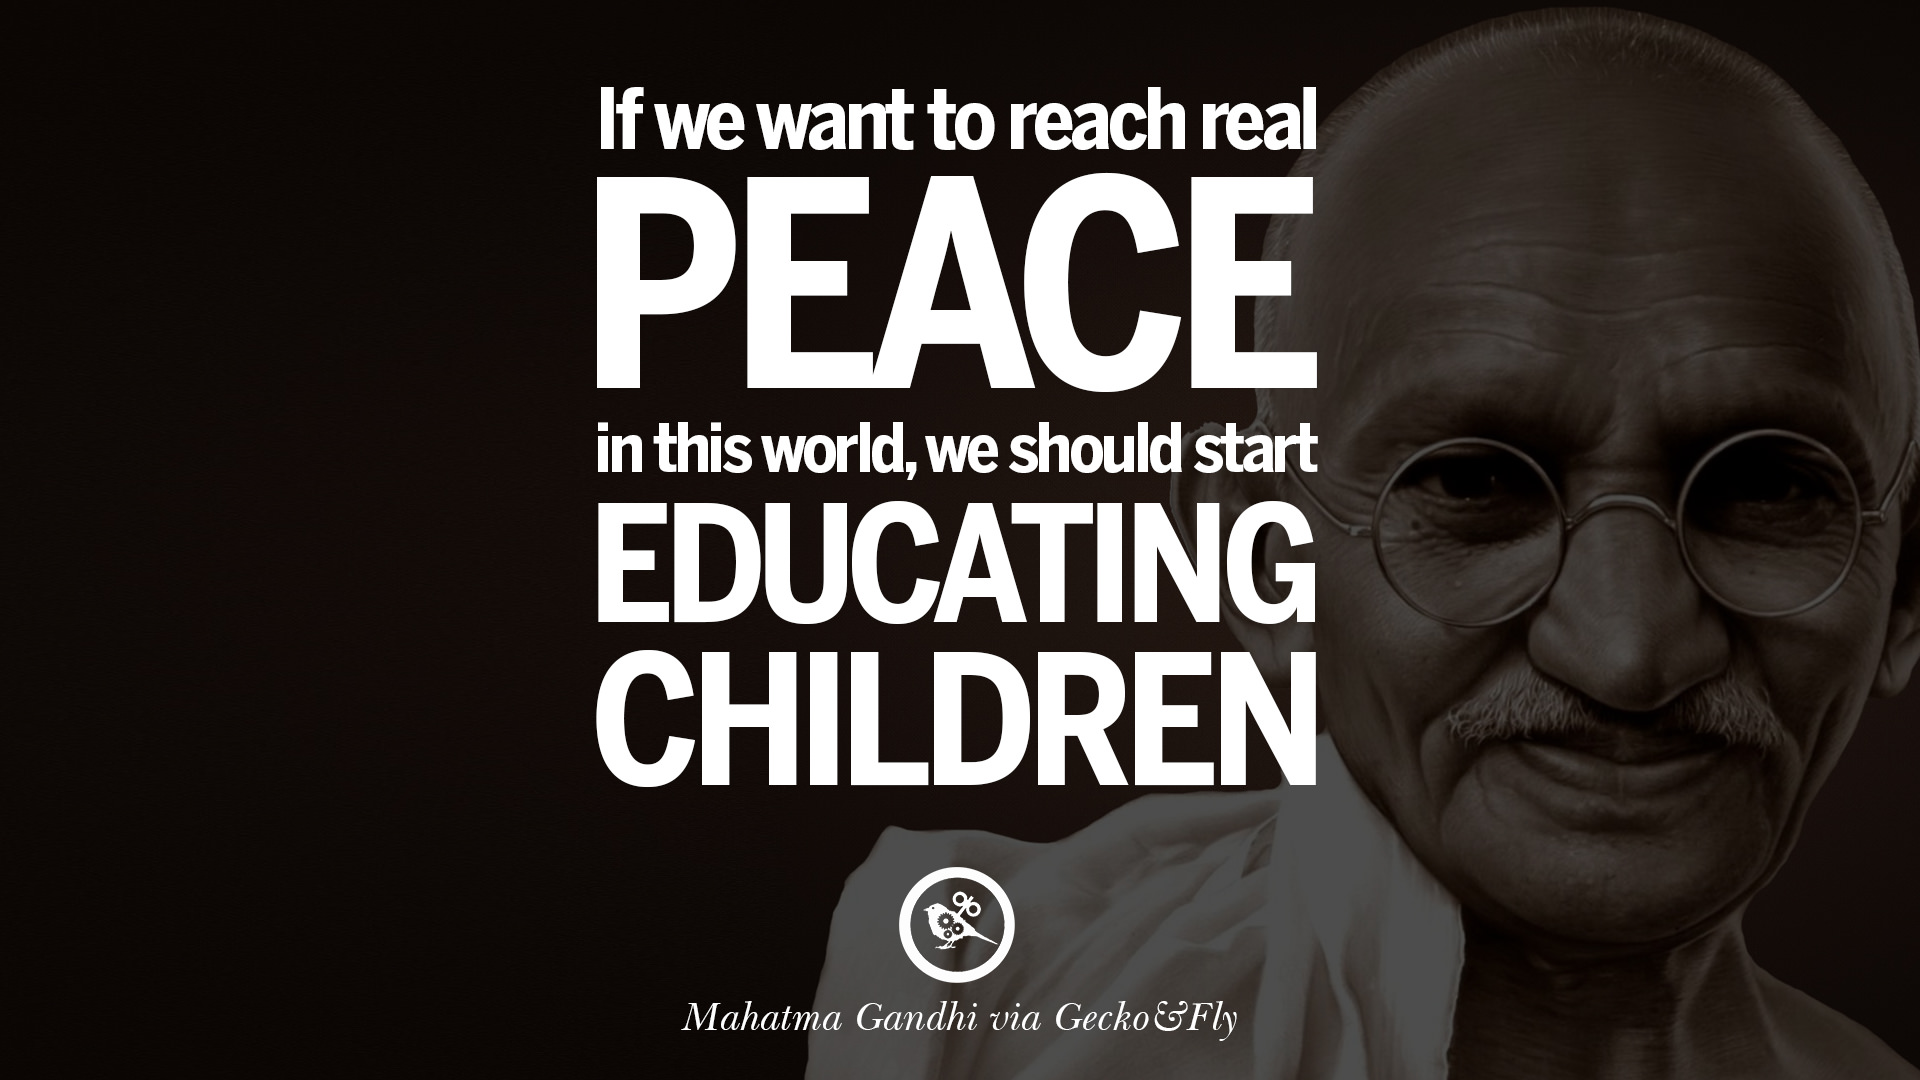 Gandhi Quotes: 28 Mahatma Gandhi Quotes And Frases On Peace, Protest, And